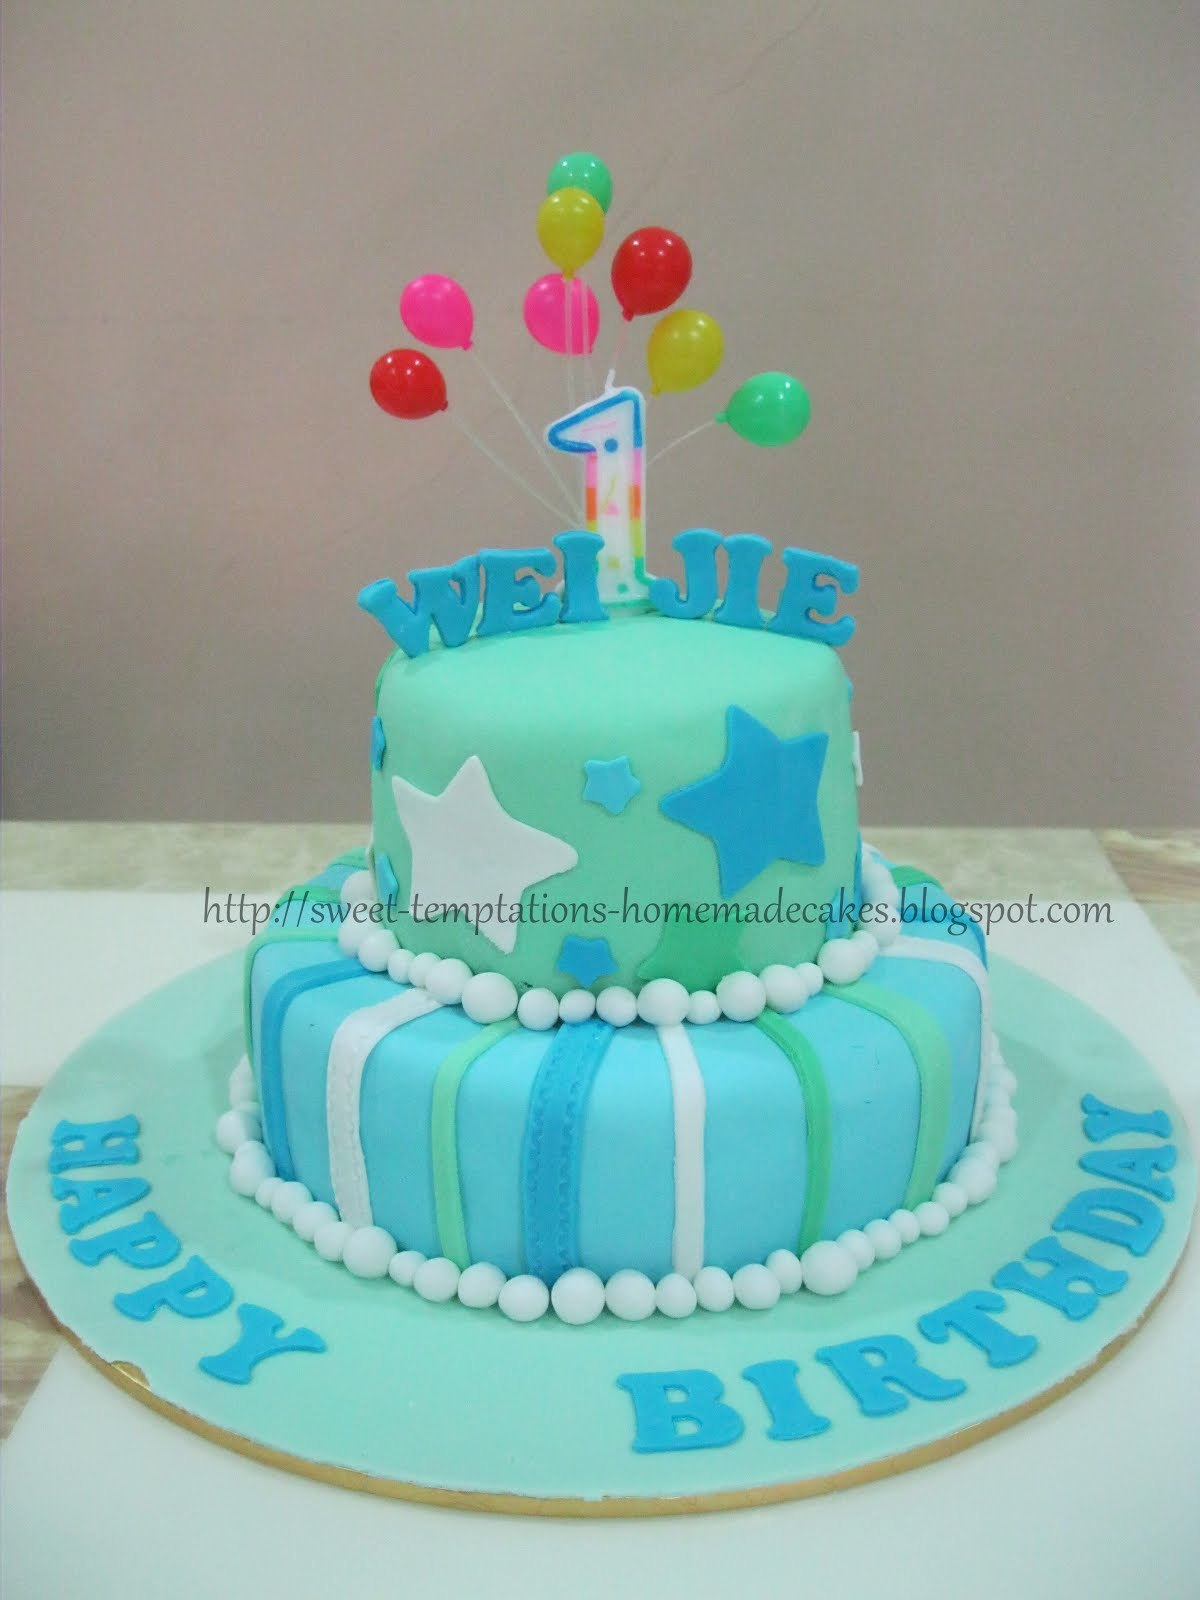 Cake For 1 Year Old Boy Pinterest : Sweet Temptations Homemade Cakes & Pastry: 1 Year Old Boy ...